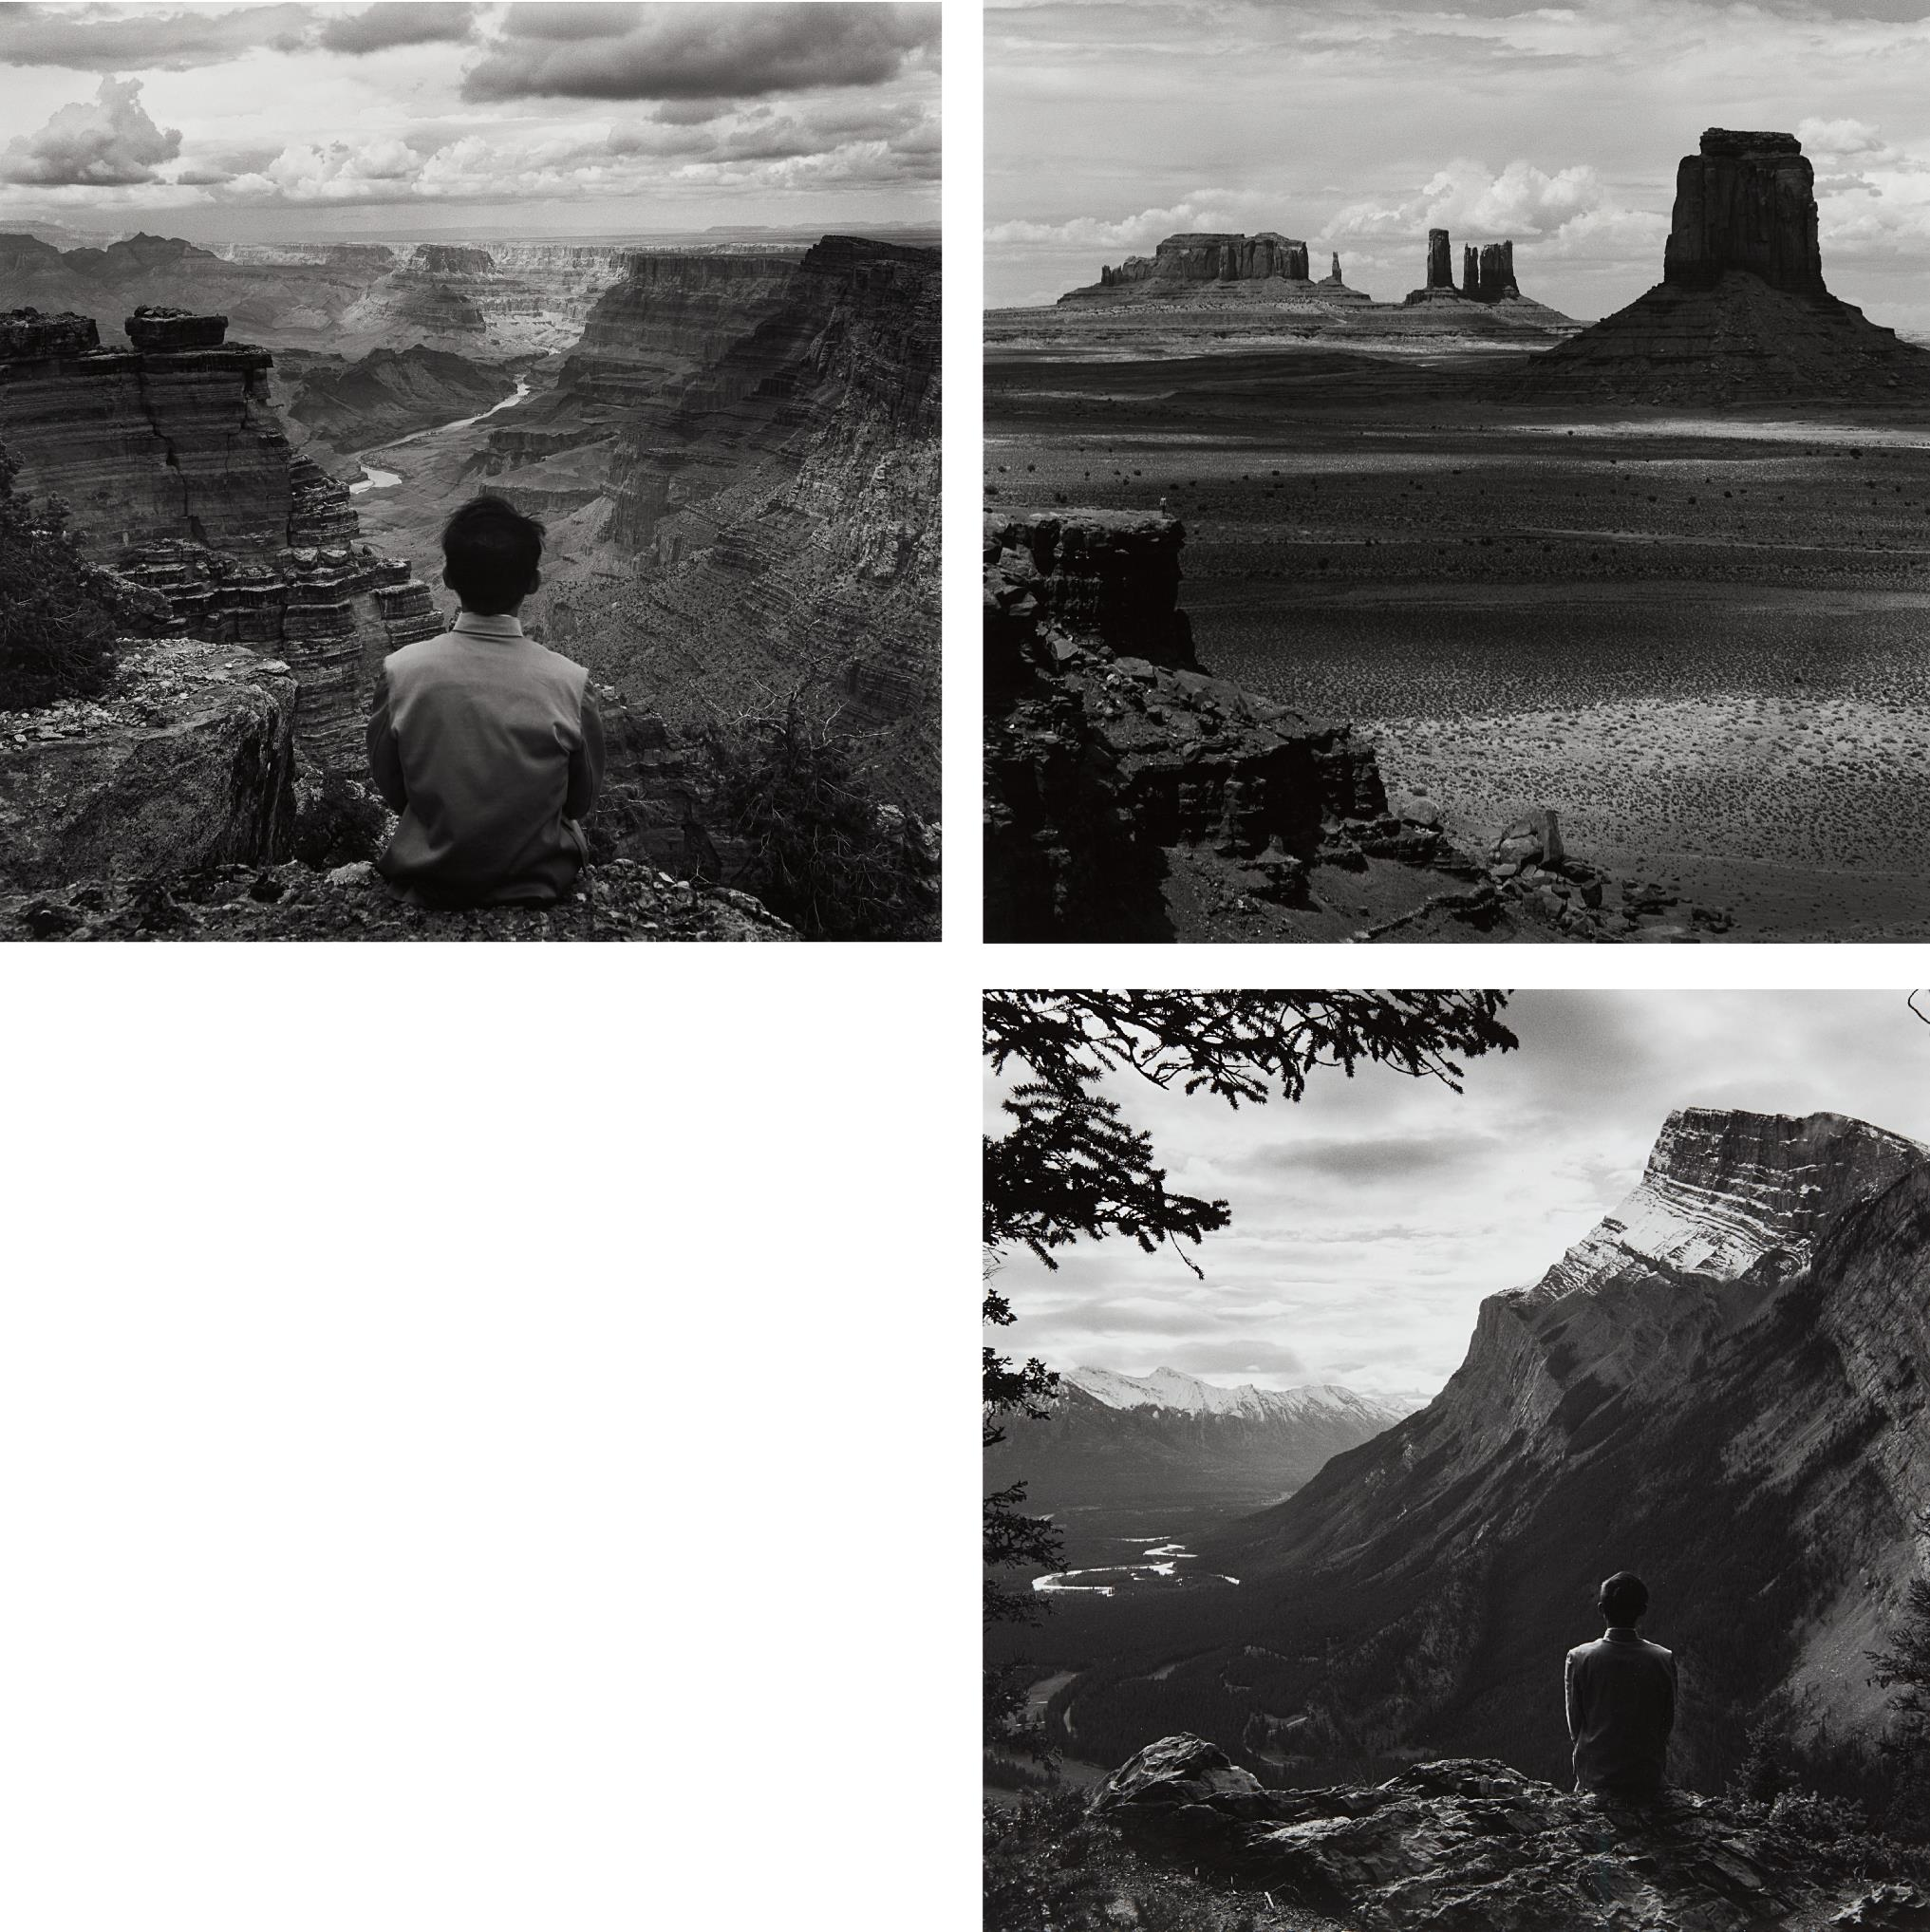 Tseng Kwong Chi-Grand Canyon, Arizona; Monument Valley, Arizona; Banff National Park, Alberta, Canada-1987